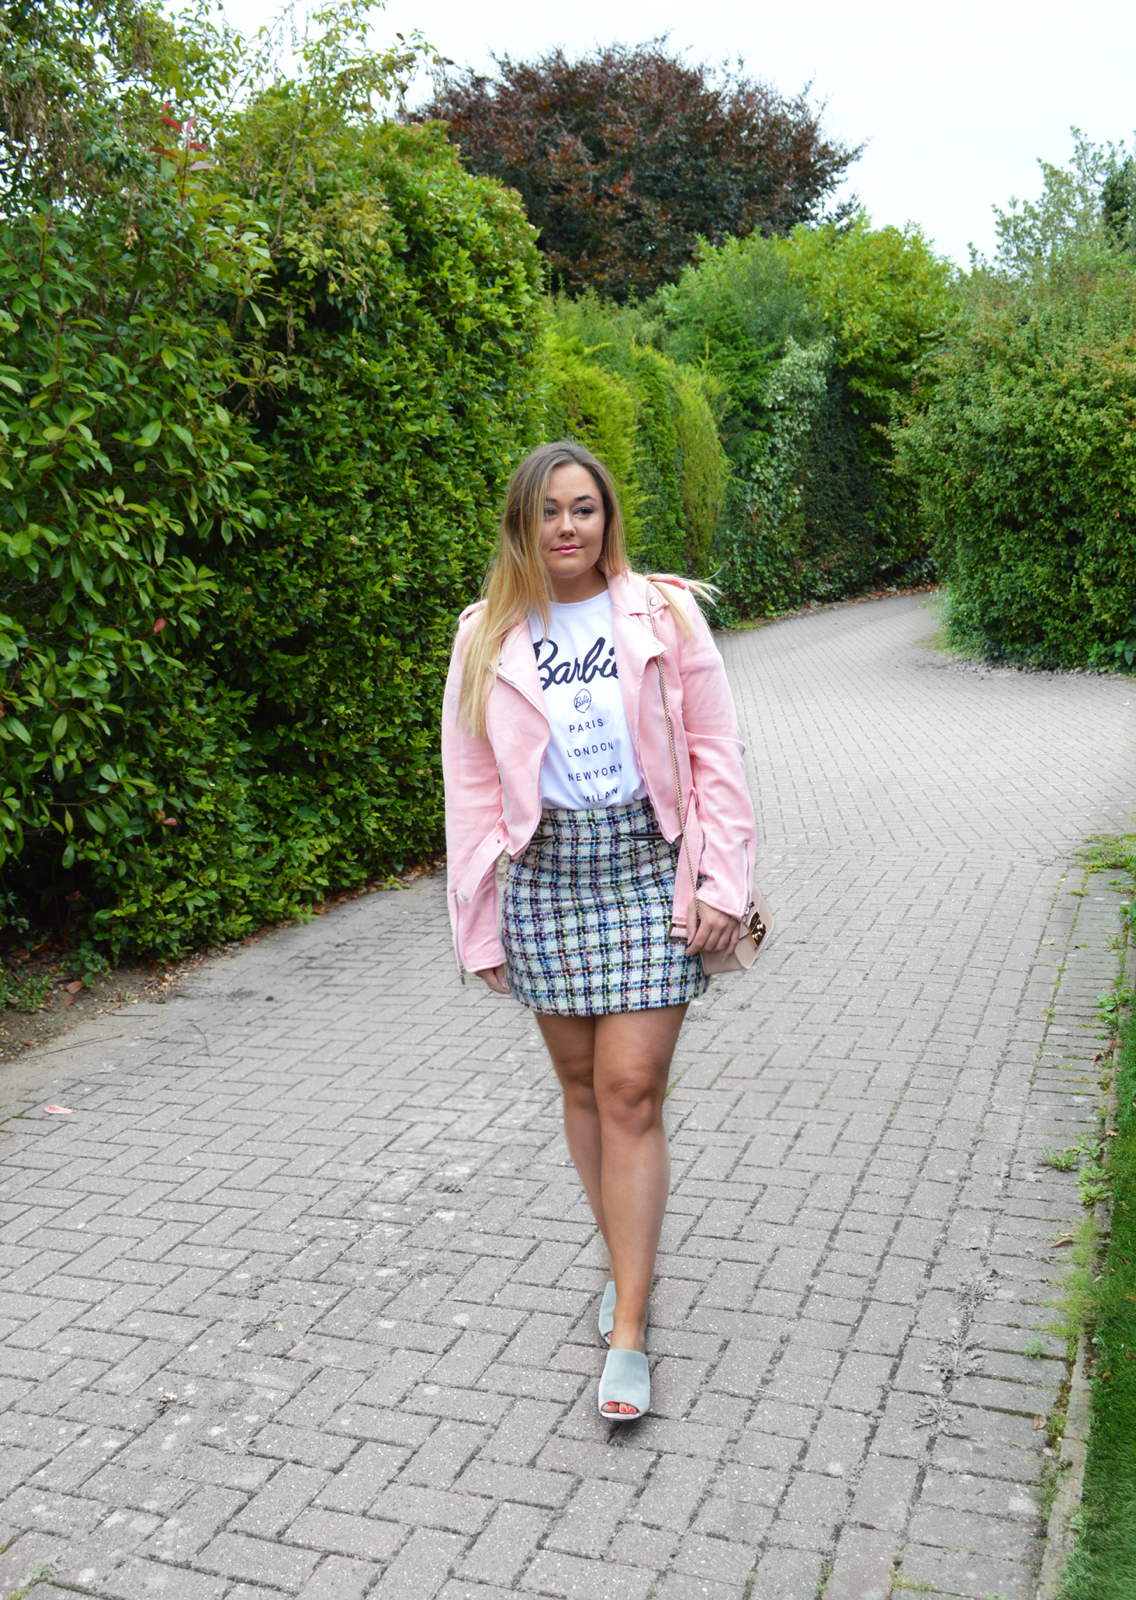 Hannah wearing Missguided x Barbie T Shirt with pink jacket and tweed skirt